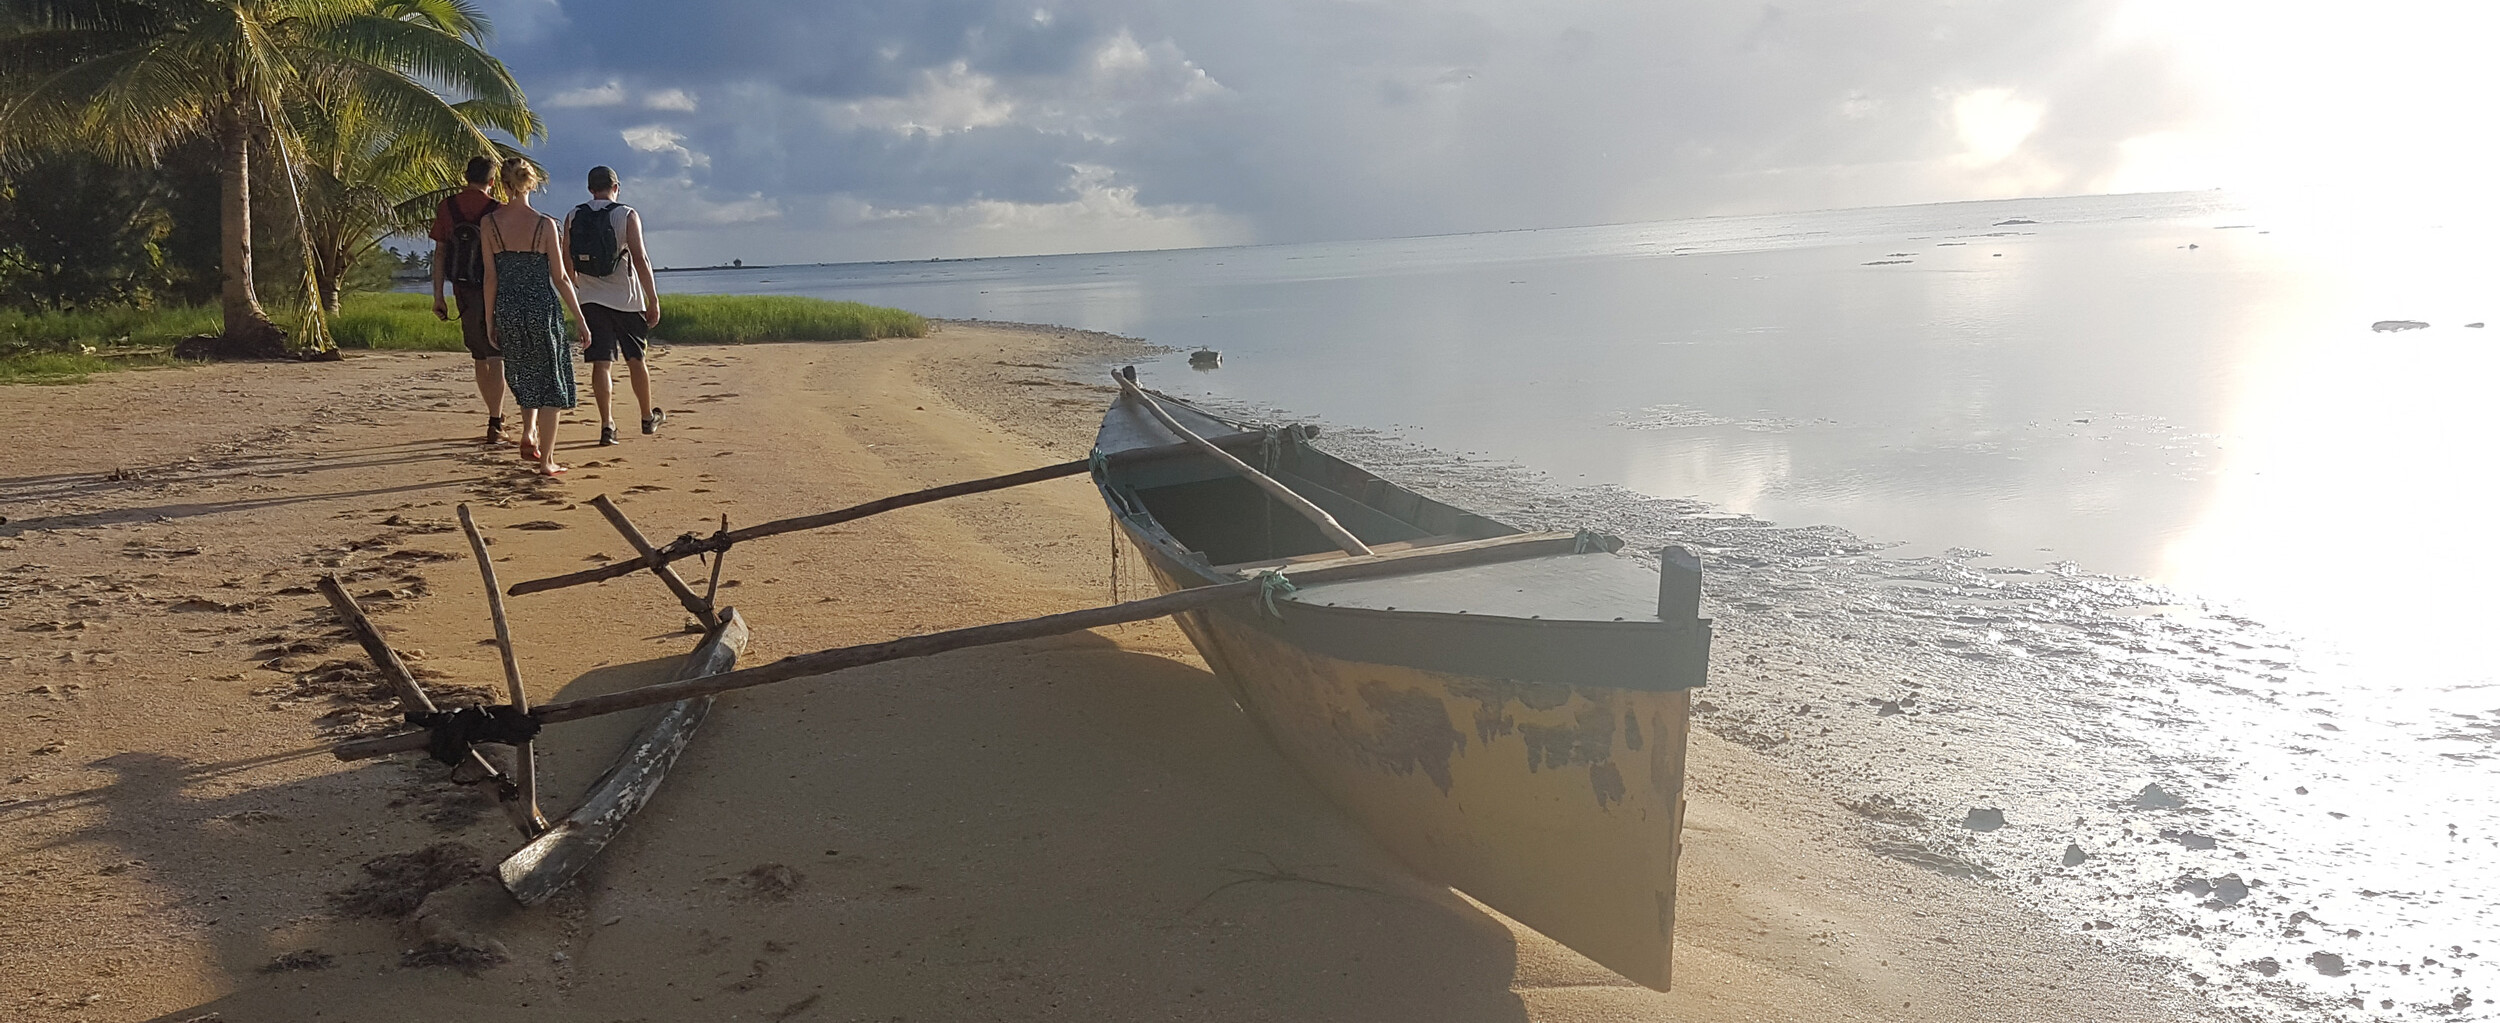 Cook Inseln Reisebericht - Traditionelles Boot am Strand